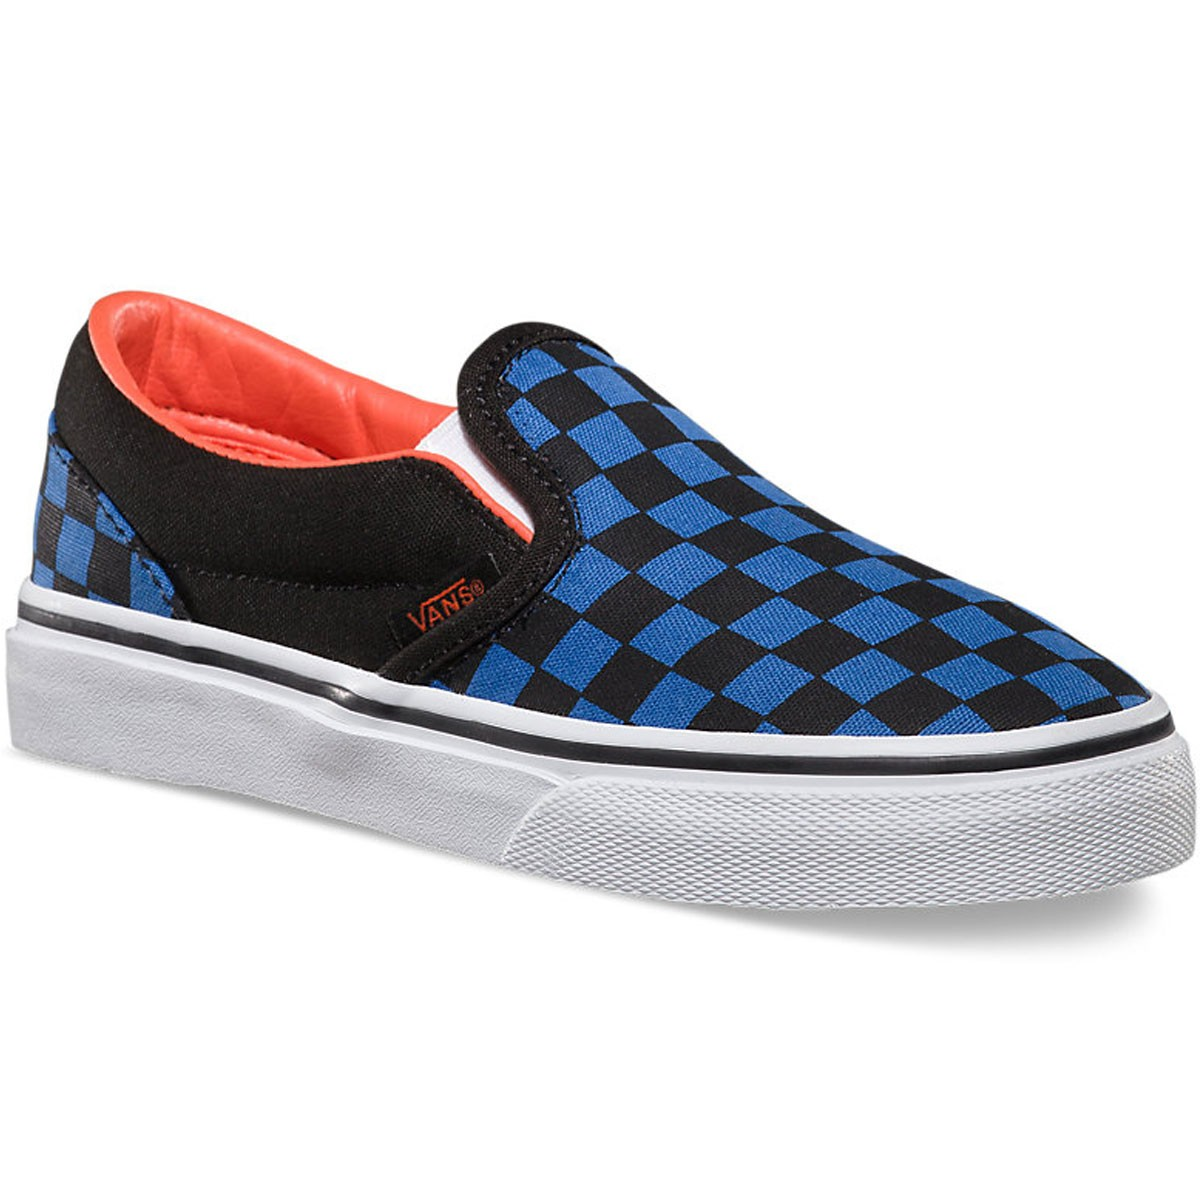 Vans Classic Slip On Youth Shoes - Checkerboard/Black/Blue - 4.0